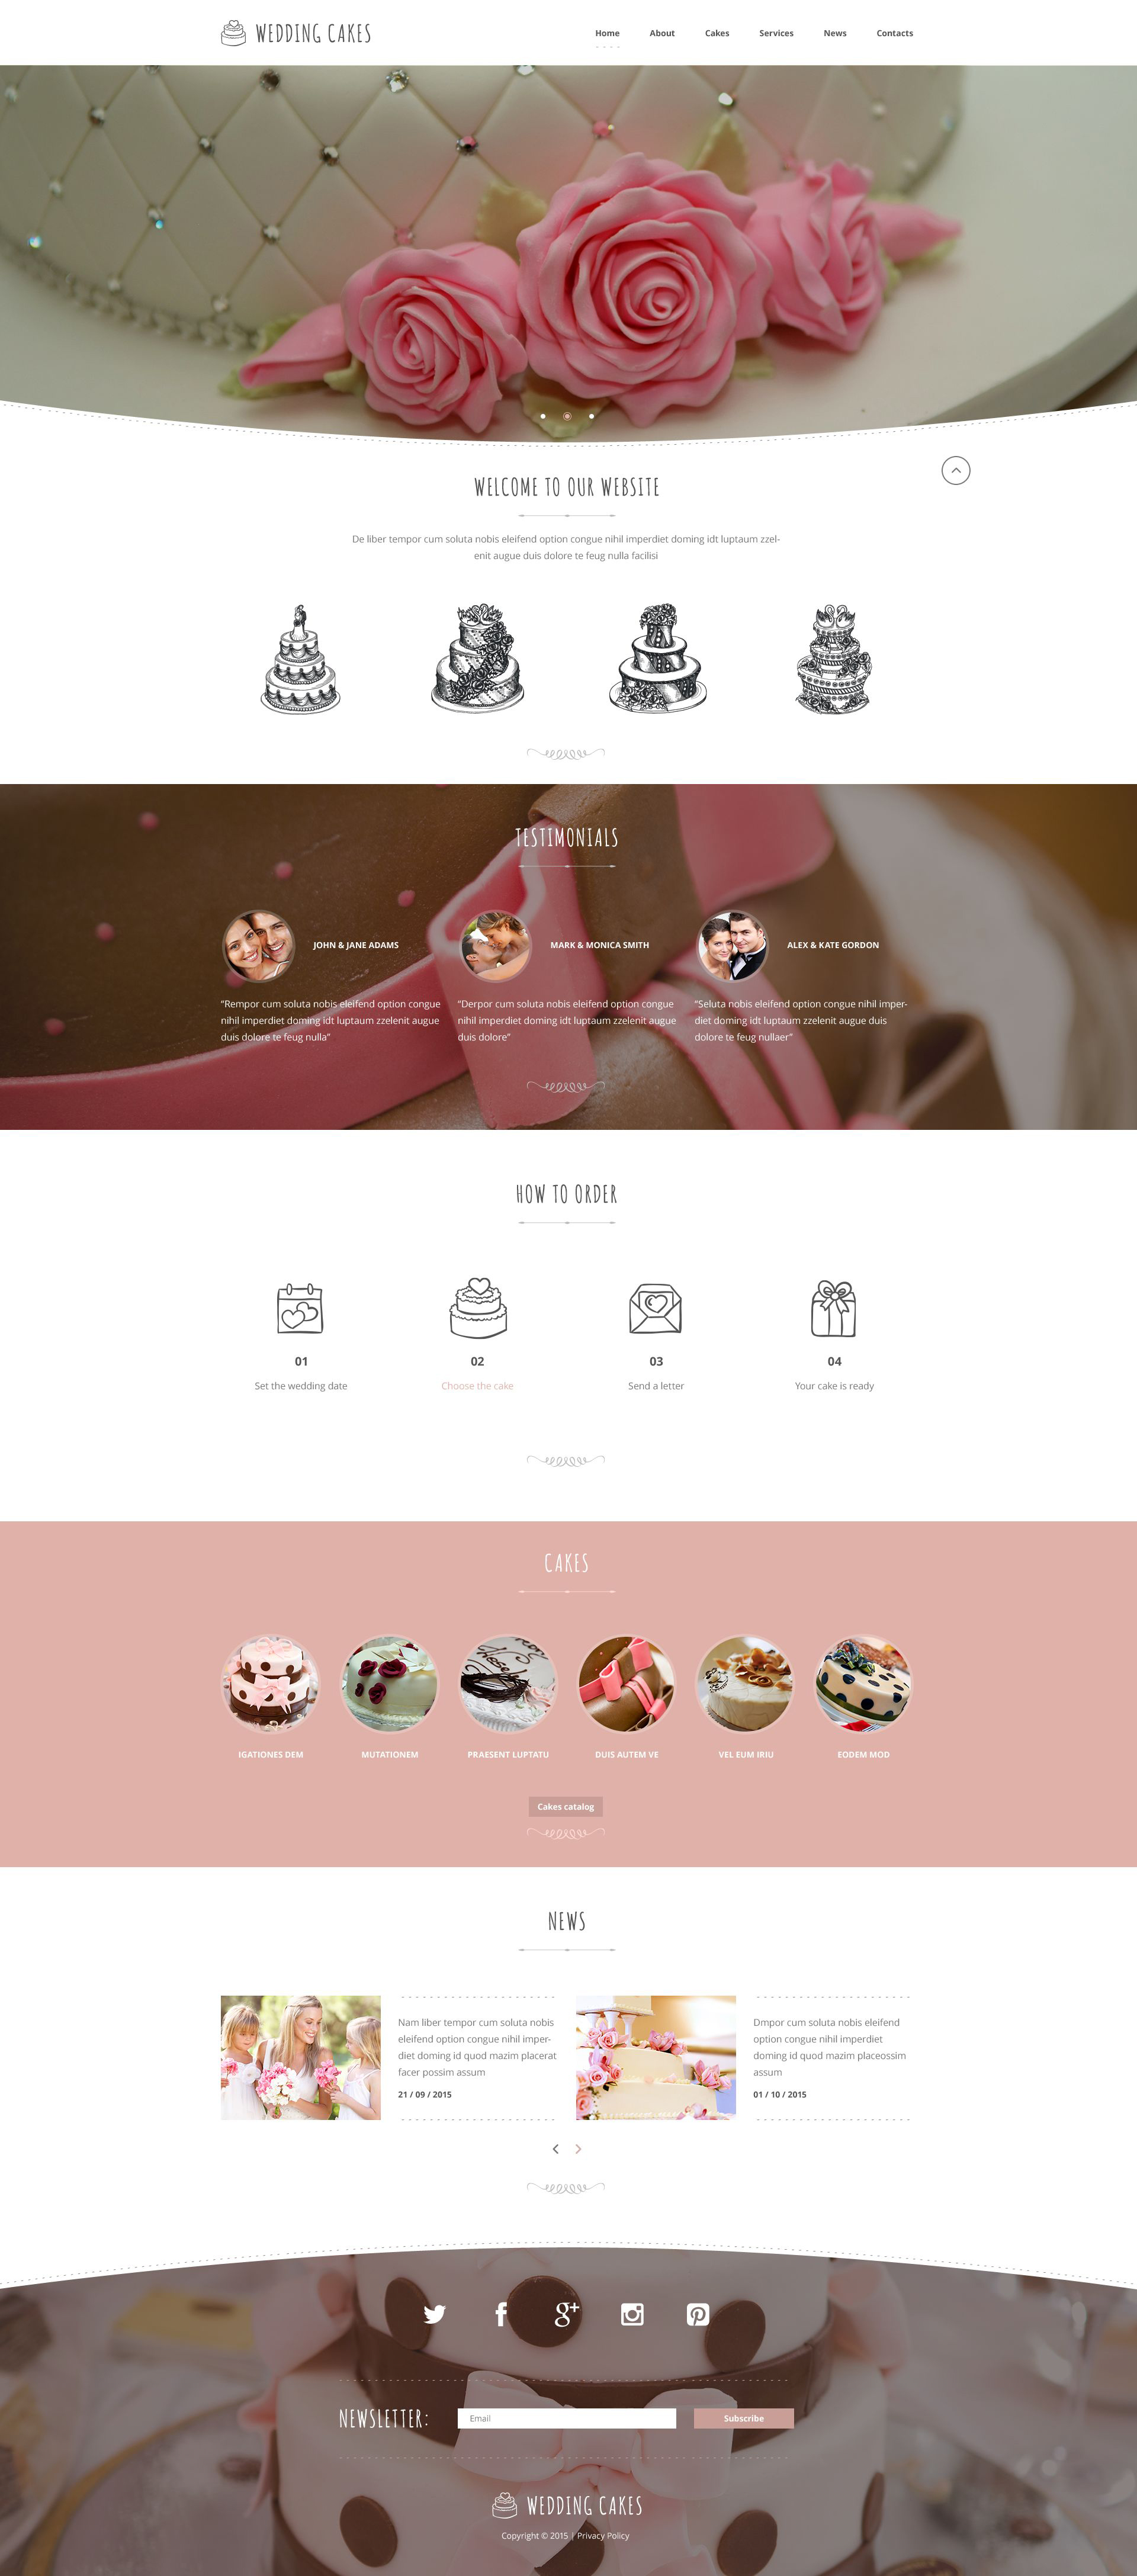 The Wedding Charlotte Responsive Javascript Animated Design 53978, one of the best website templates of its kind (wedding, most popular), also known as wedding charlotte website template, cakes website template, delights website template, cake website template, sweet tasty website template, pleasure website template, recipe website template, confectionery website template, dessert website template, celebration store and related with wedding charlotte, cakes, delights, cake, sweet tasty, pleasure, recipe, confectionery, dessert, celebration store, etc.